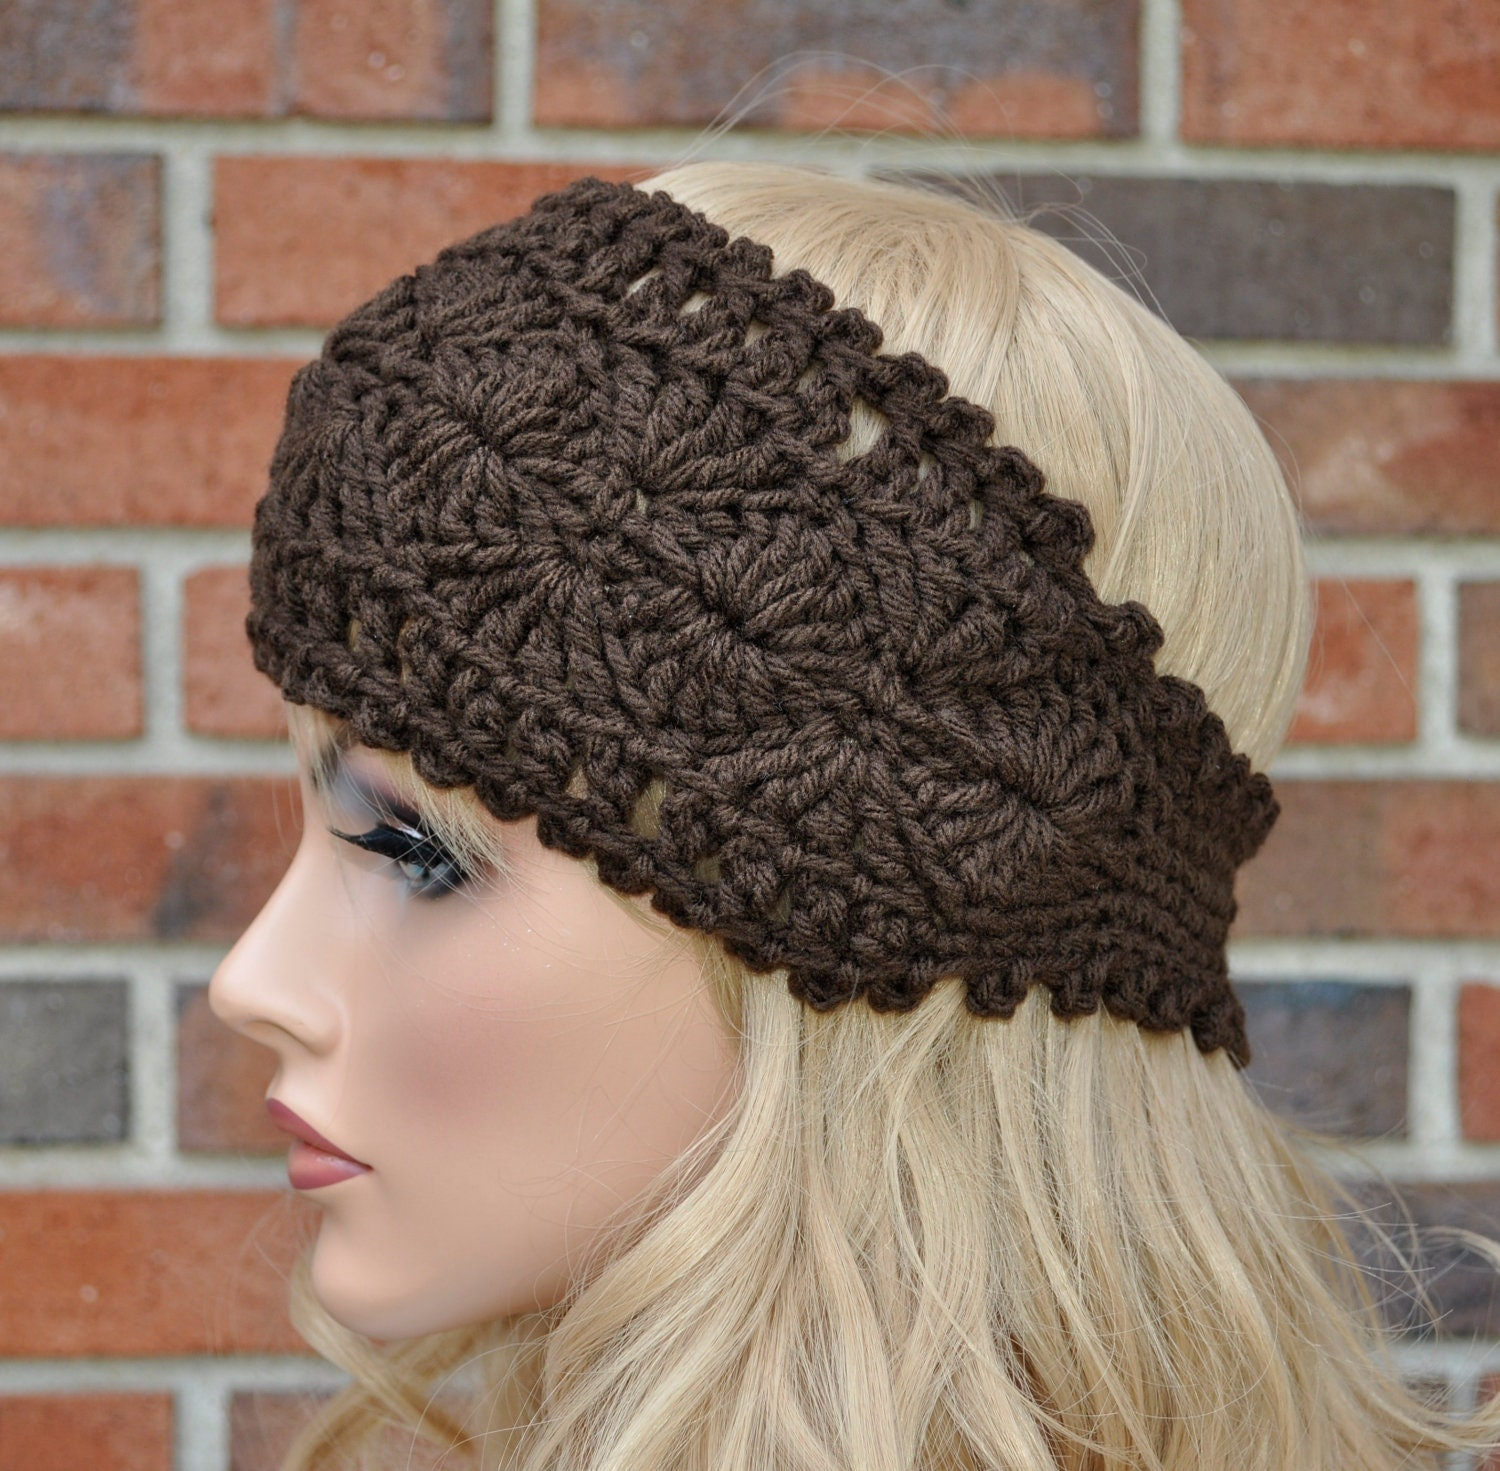 Free Crochet Patterns For Wide Headbands : Crochet Headwrap Womens Crochet Headband in Chocolate